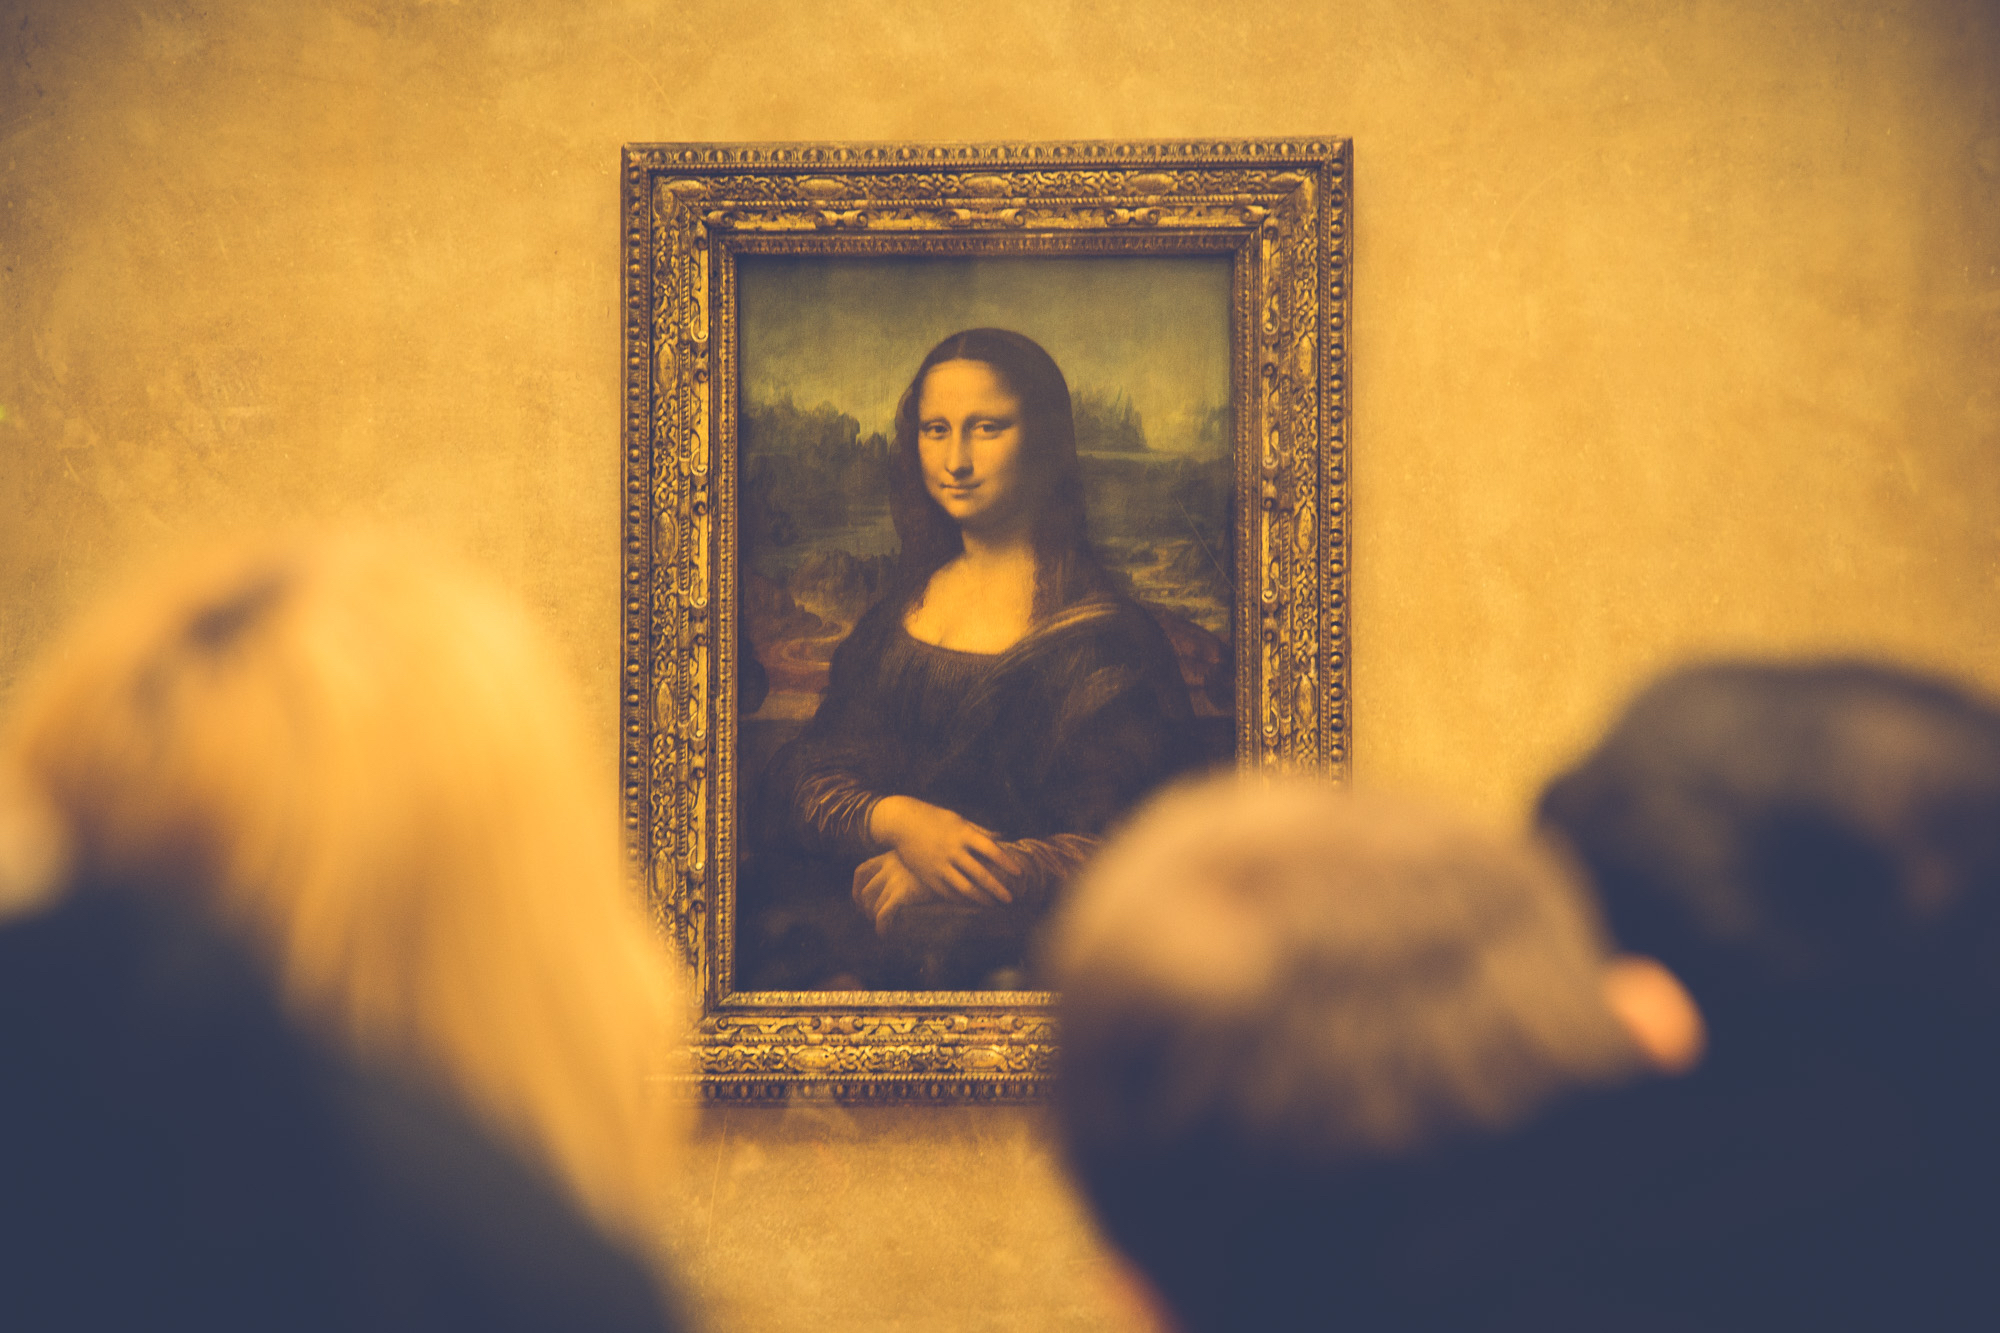 Copy of The Mona Lisa on view at the Louvre